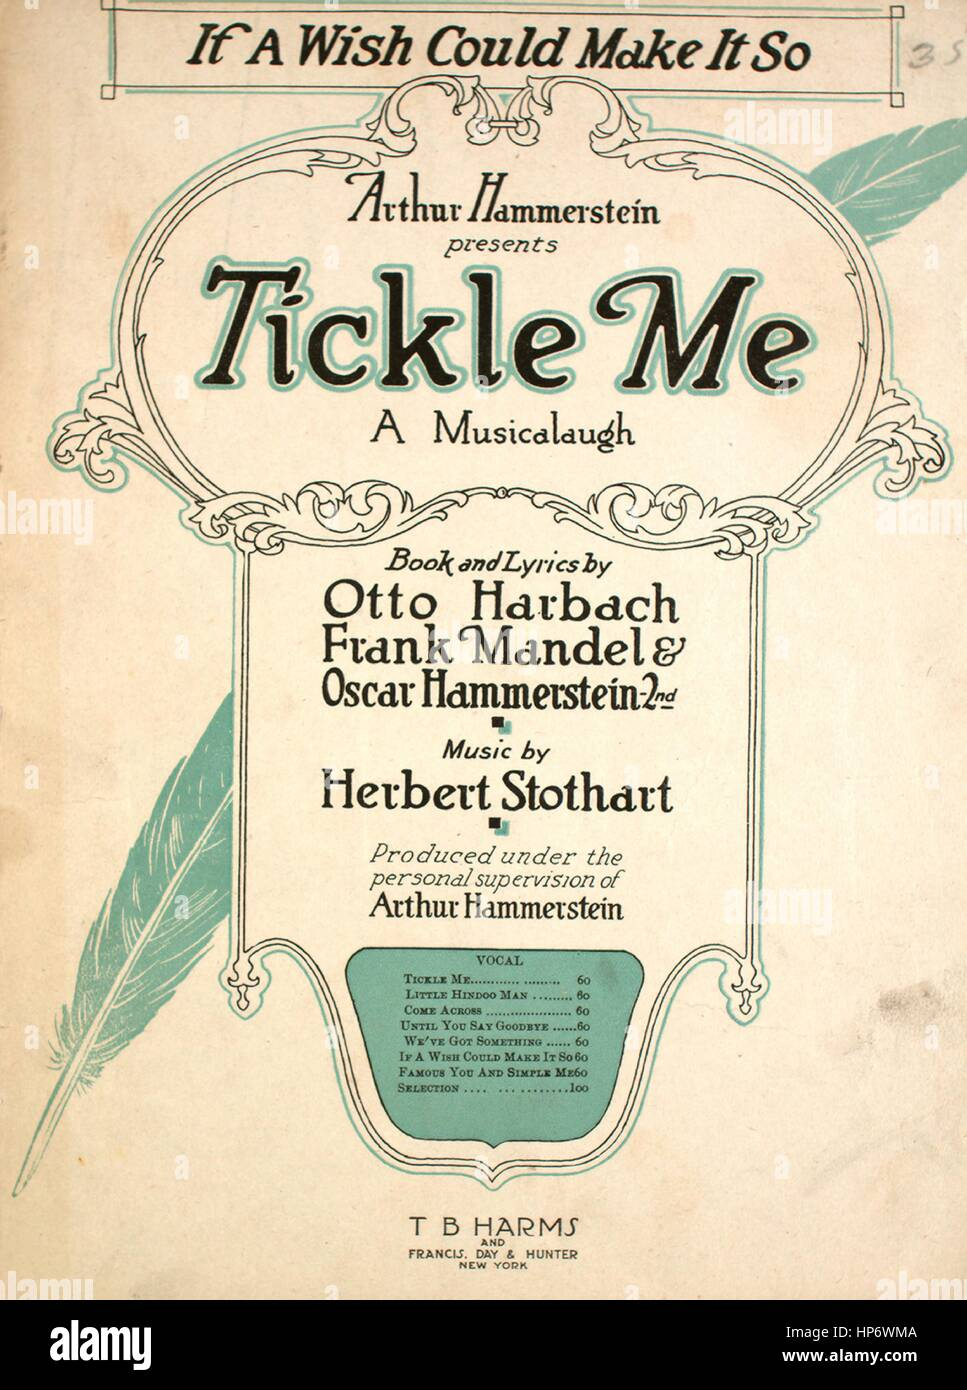 Sheet music cover image of the song 'If a Wish Could Make it So